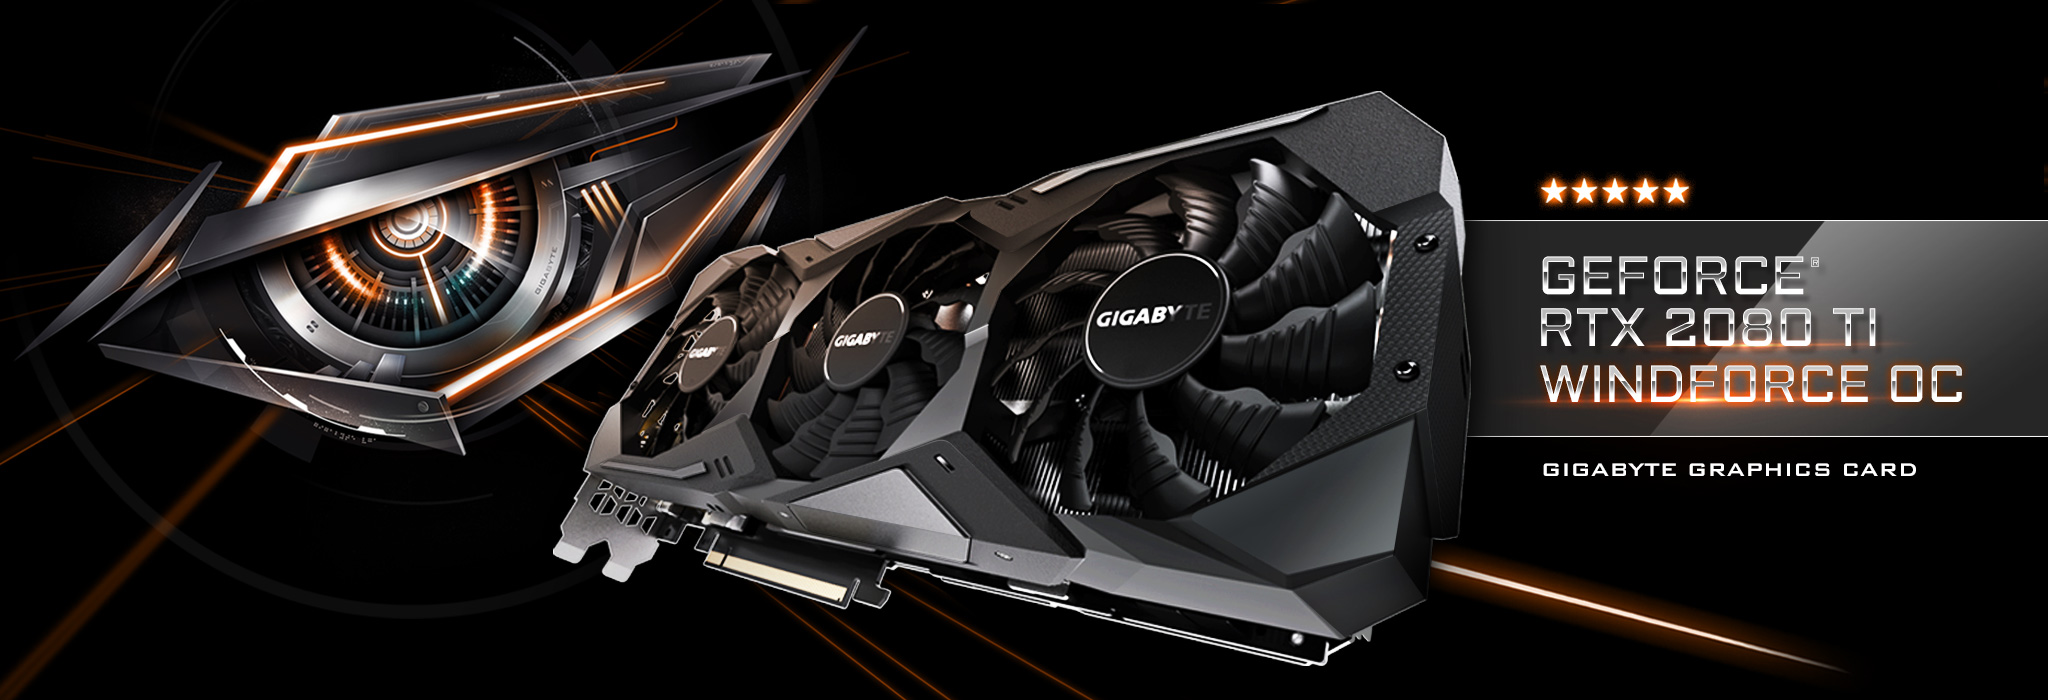 GIGABYTE GeForce RTX 2080 Ti GAMING OC 11G Graphics Card, 3 x WINDFORCE  Fans, 11GB 352-Bit GDDR6, GV-N208TGAMING OC-11GC Video Card - Newegg com